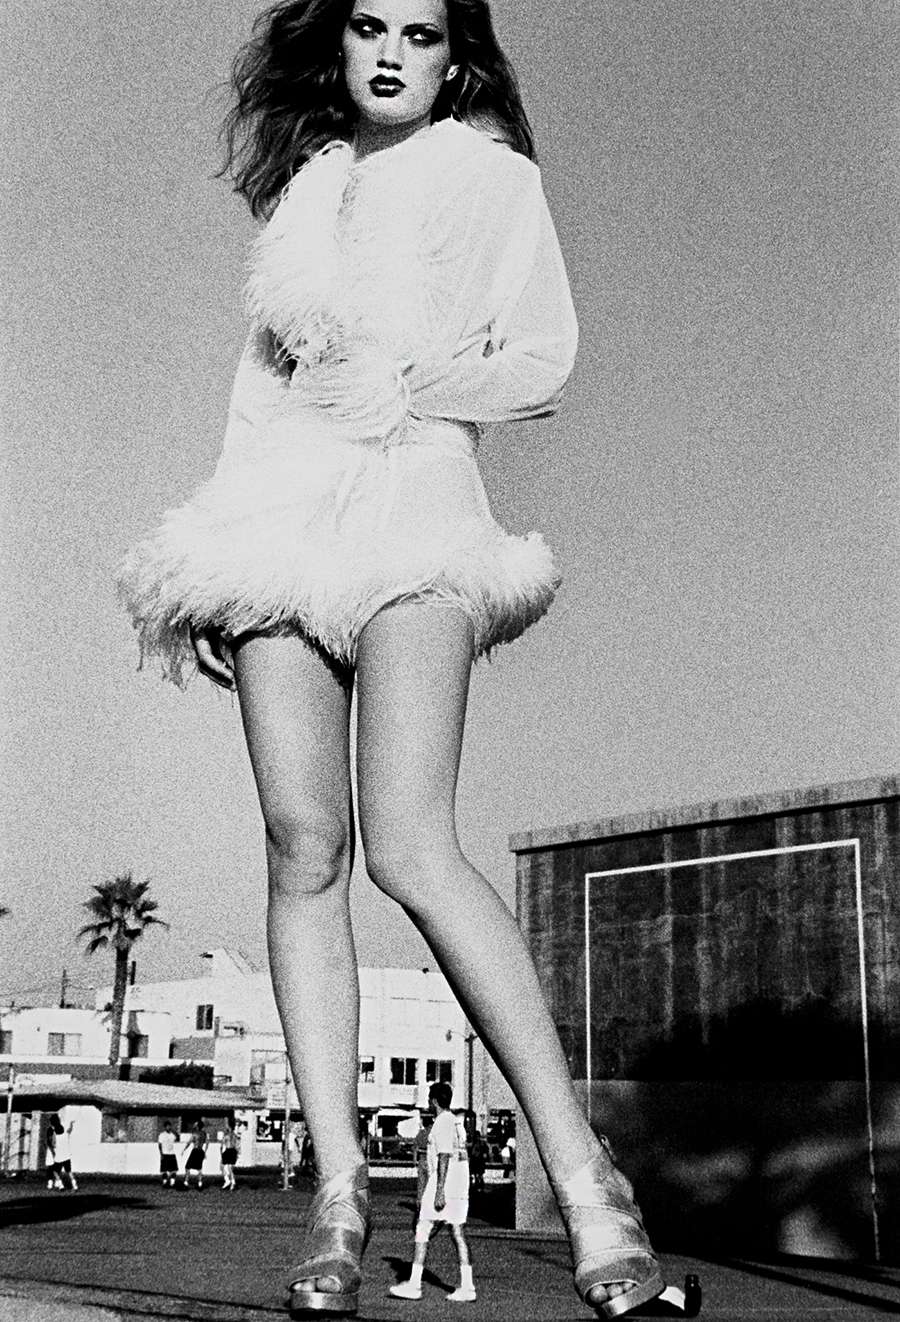 Tony_Ward_early_work_portfolio_classics_nudes_1990's_rooftop_vintage_hat_model_famous_models_Los_Angeles_santa_monica_view_obsessions_Venice_Beach_boa_feathers